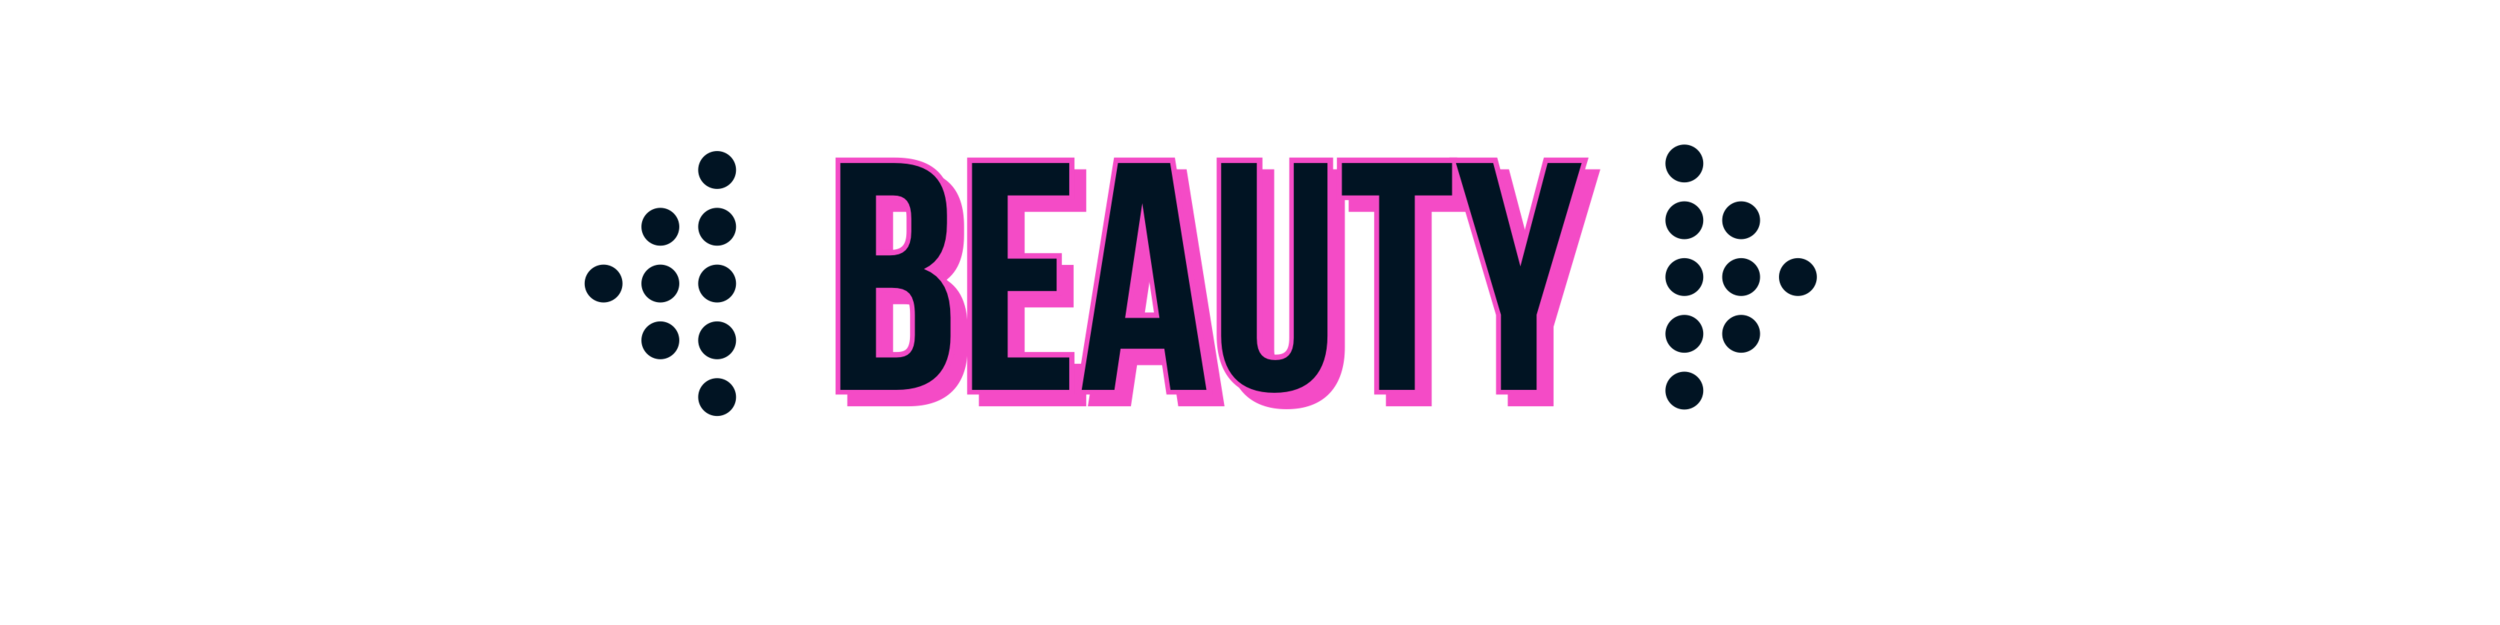 Beauty Blog Posts